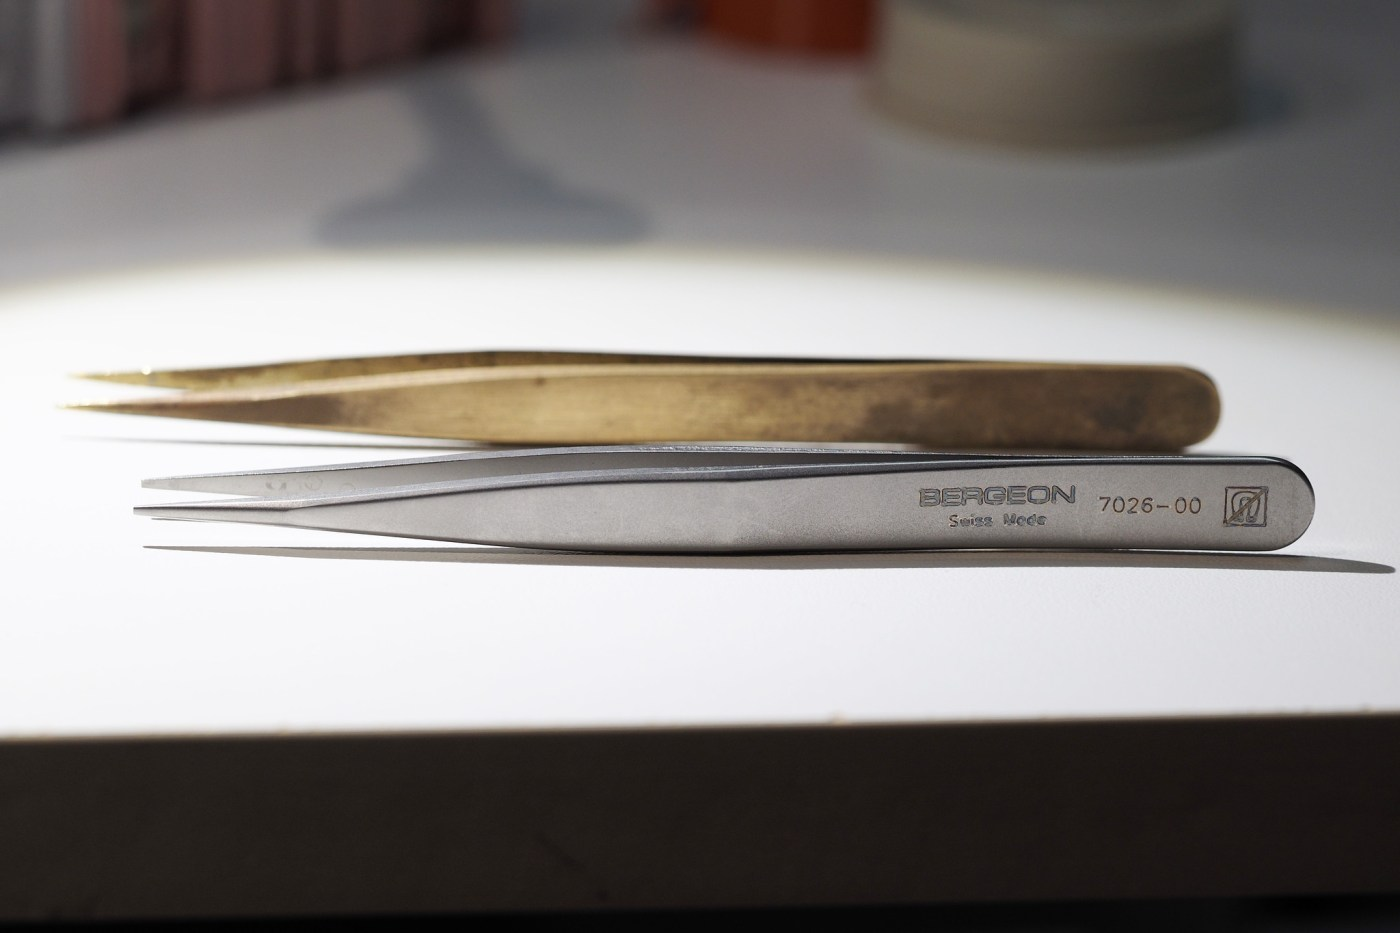 Brass and nickel watchmaking tweezers, soft enough not to damage most of the metal components